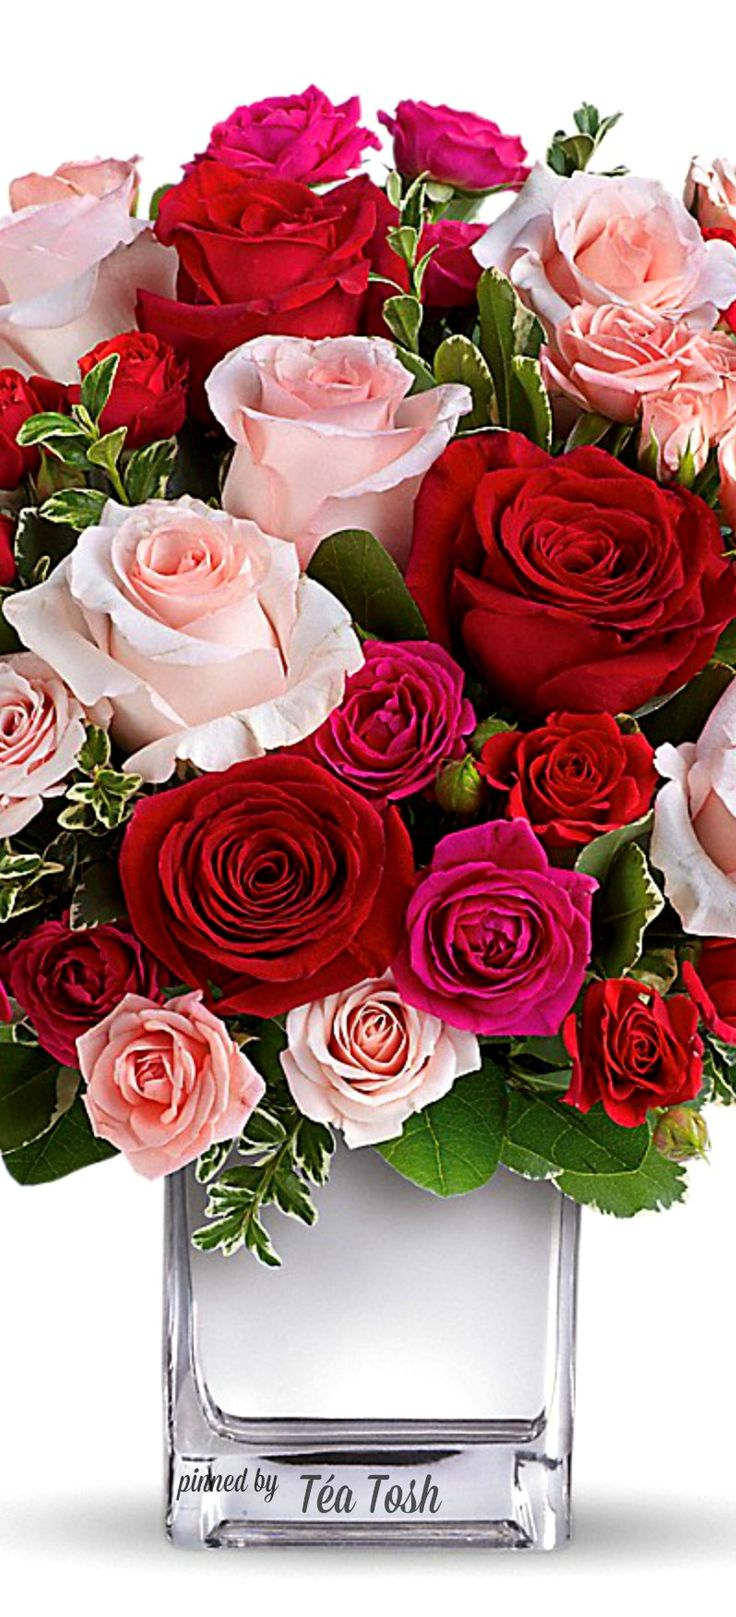 ❇Téa Tosh❇LOVE Medley Bouquet w/ Red Roses